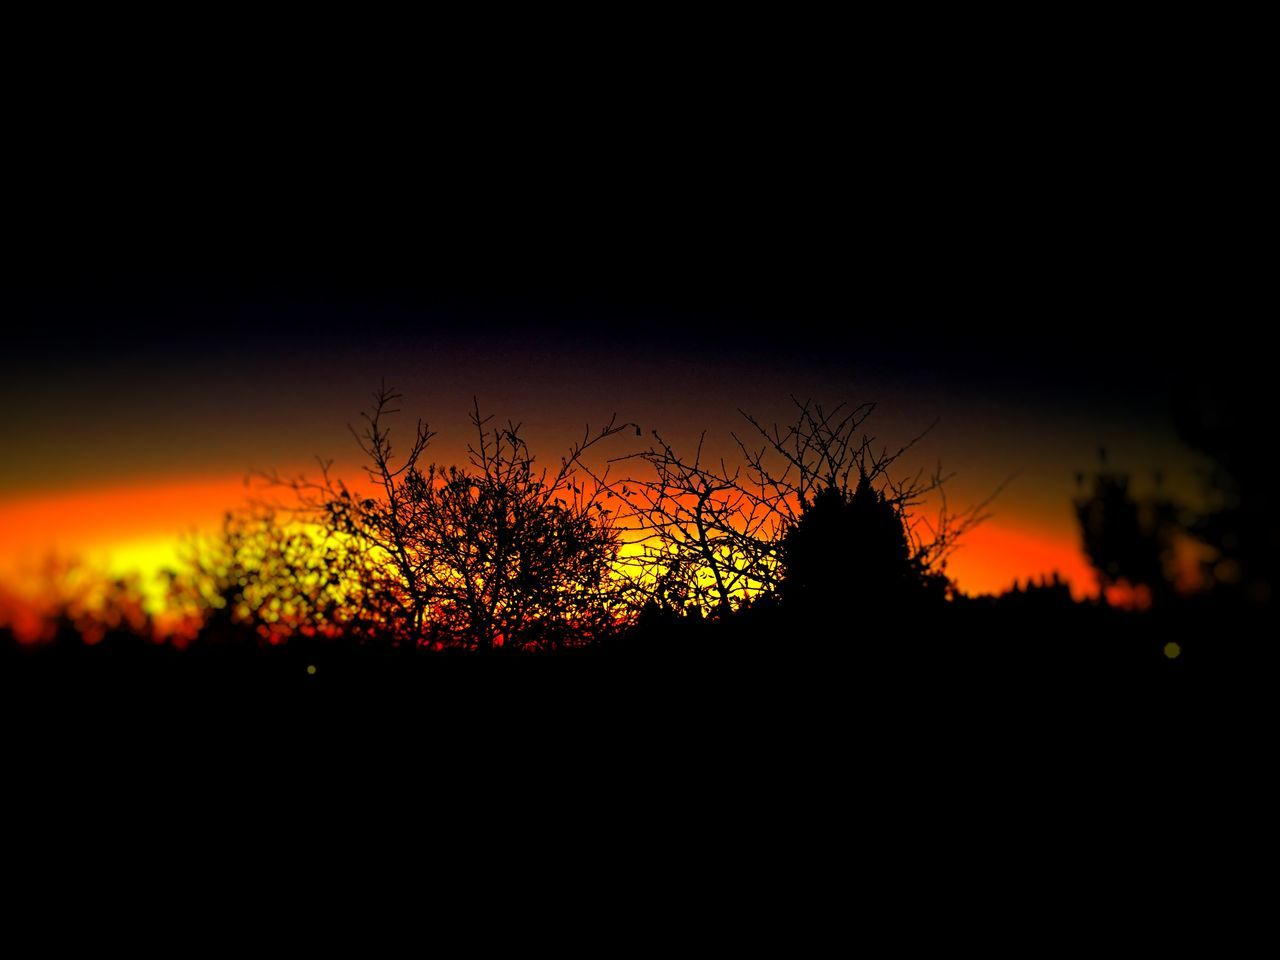 sunset, silhouette, beauty in nature, nature, orange color, tranquil scene, scenics, tranquility, tree, dark, outdoors, landscape, no people, night, growth, sky